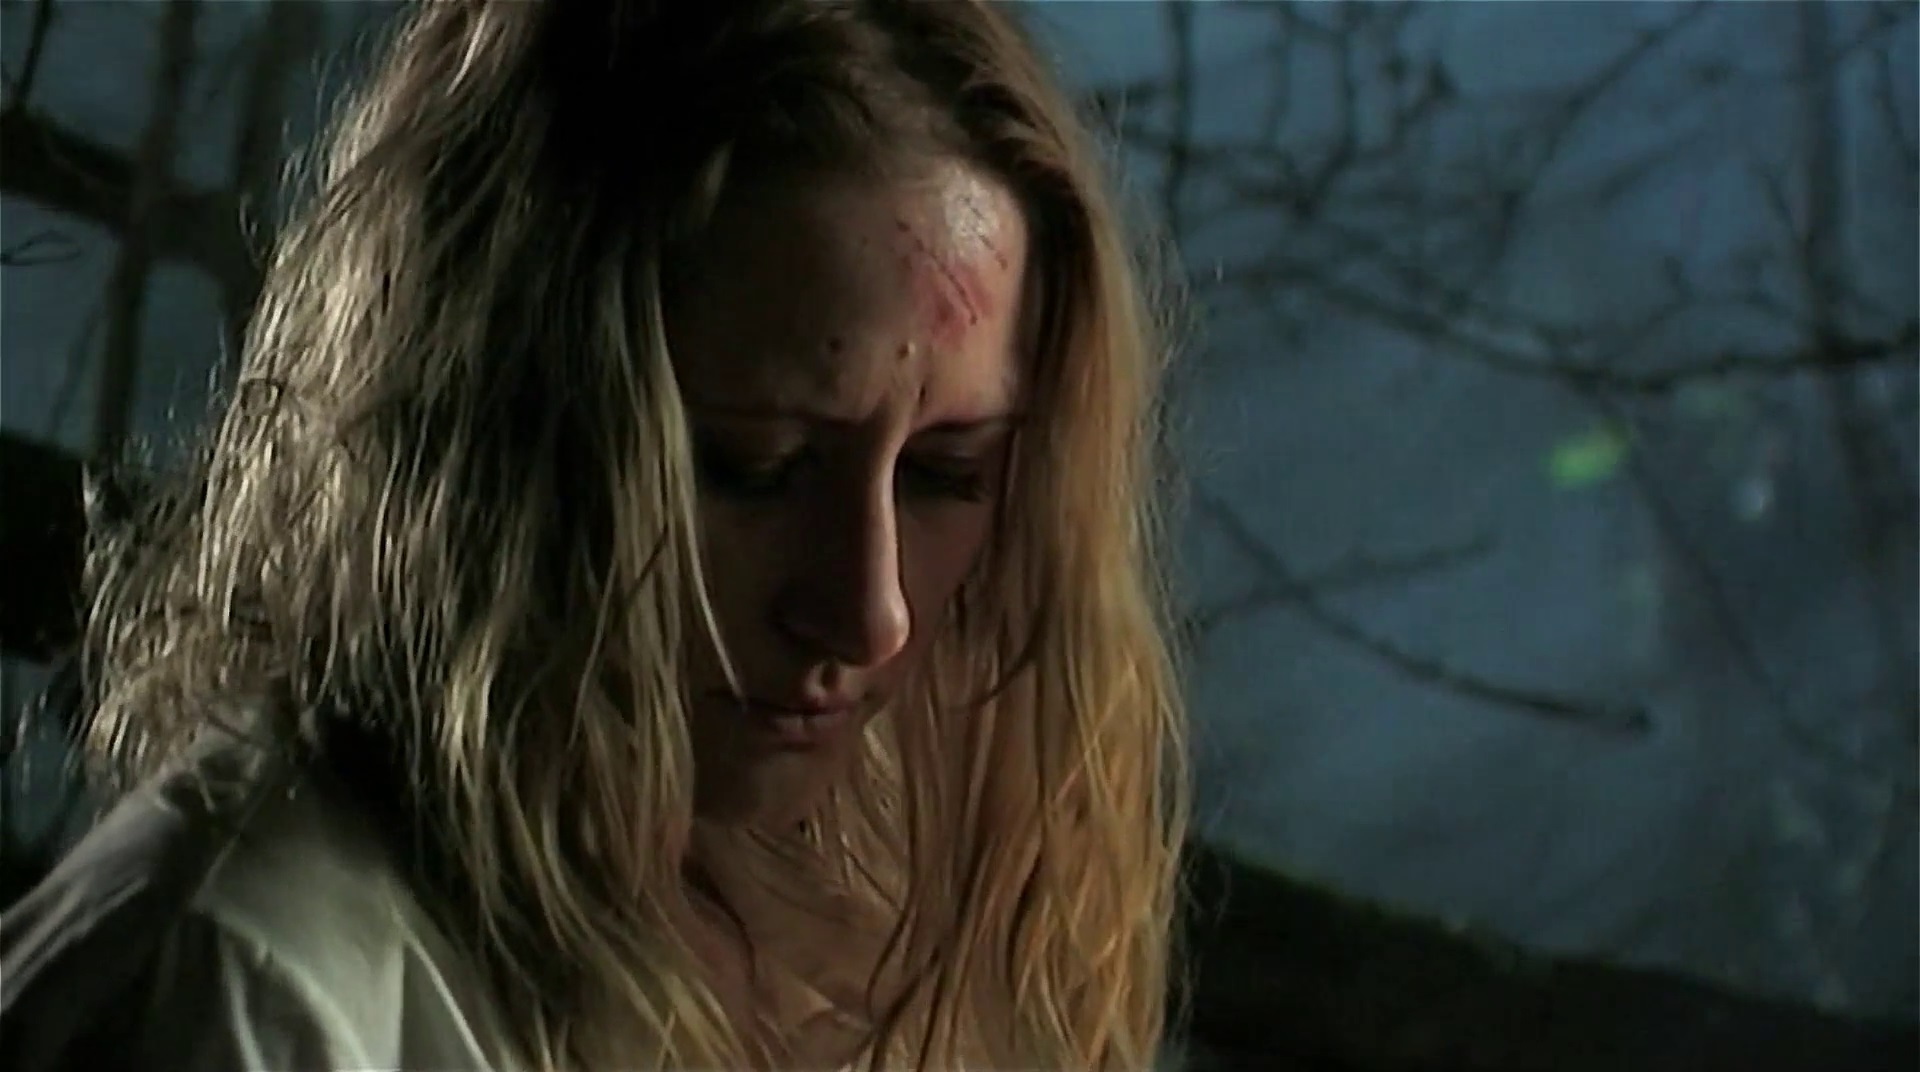 Nadja Brand in Broken (2006)